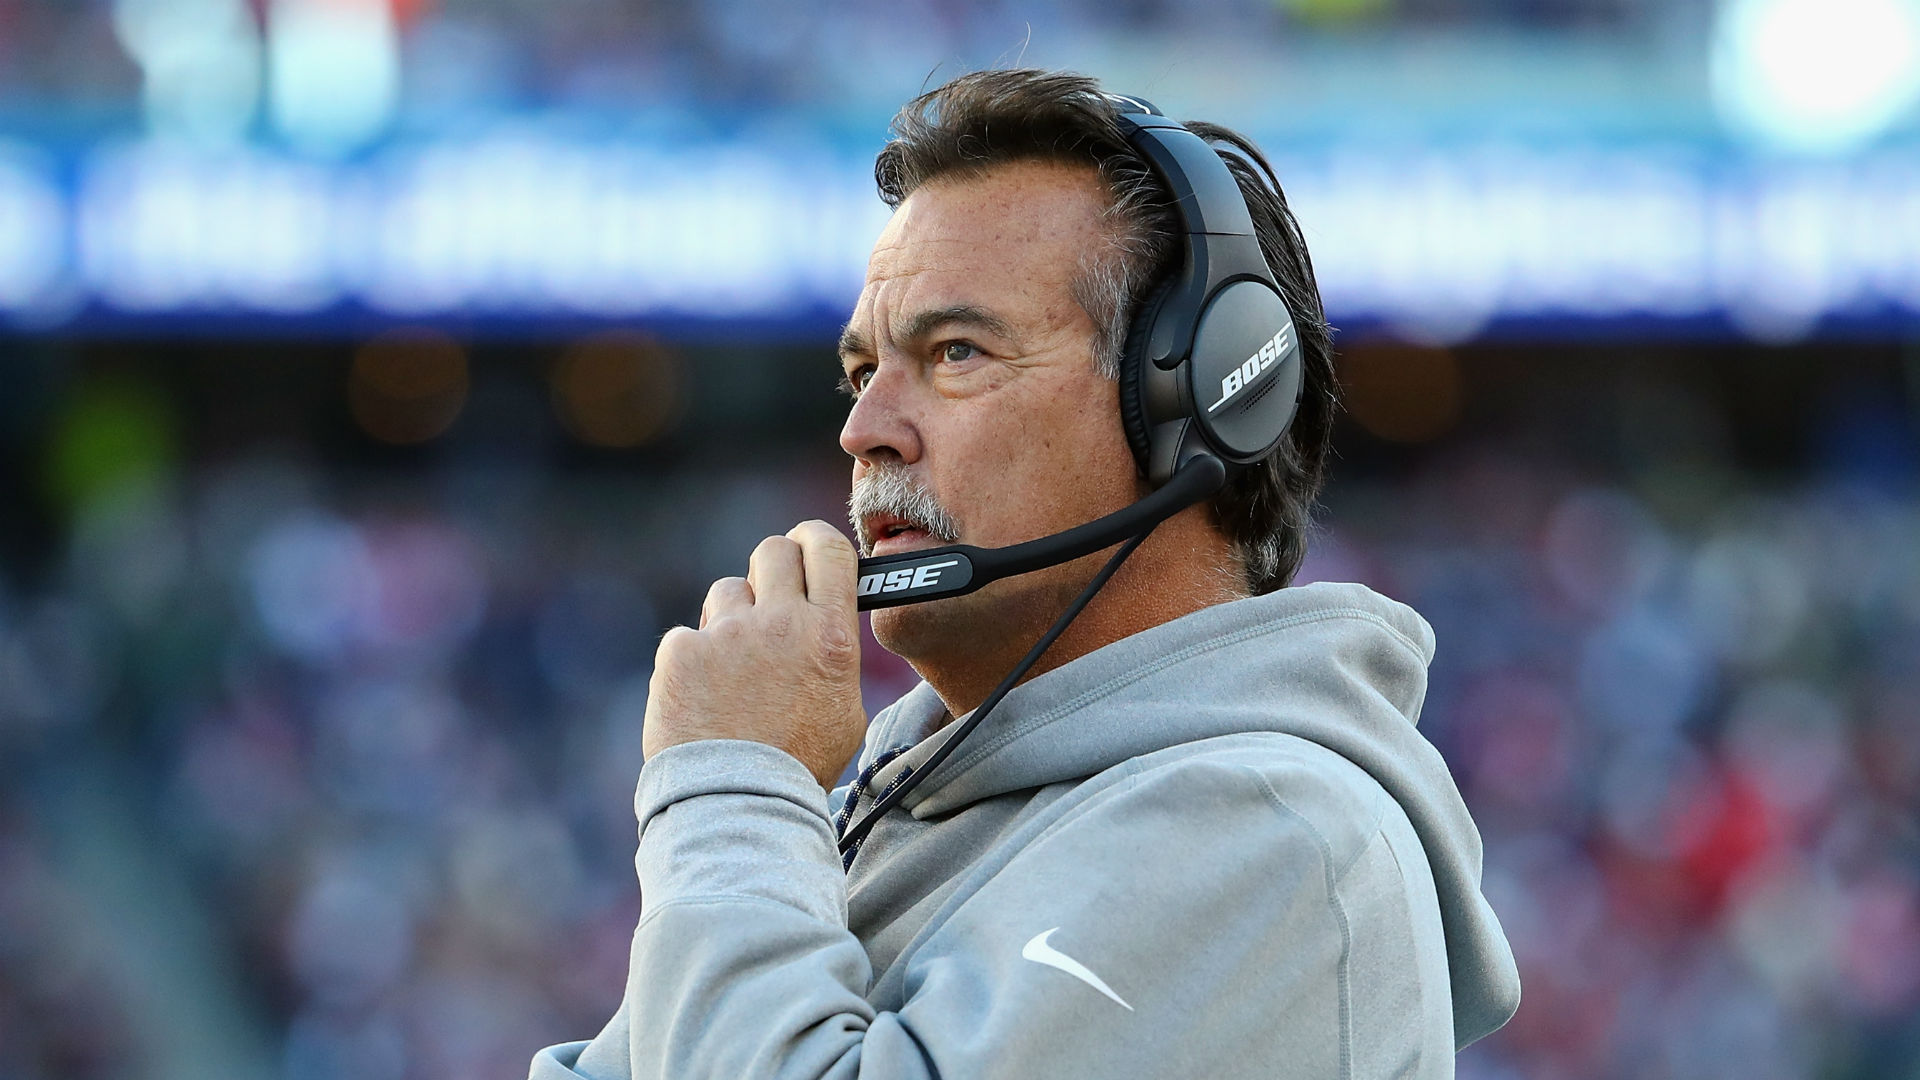 SN sources: Fox Sports talking to Jeff Fisher about NFL game analyst gig